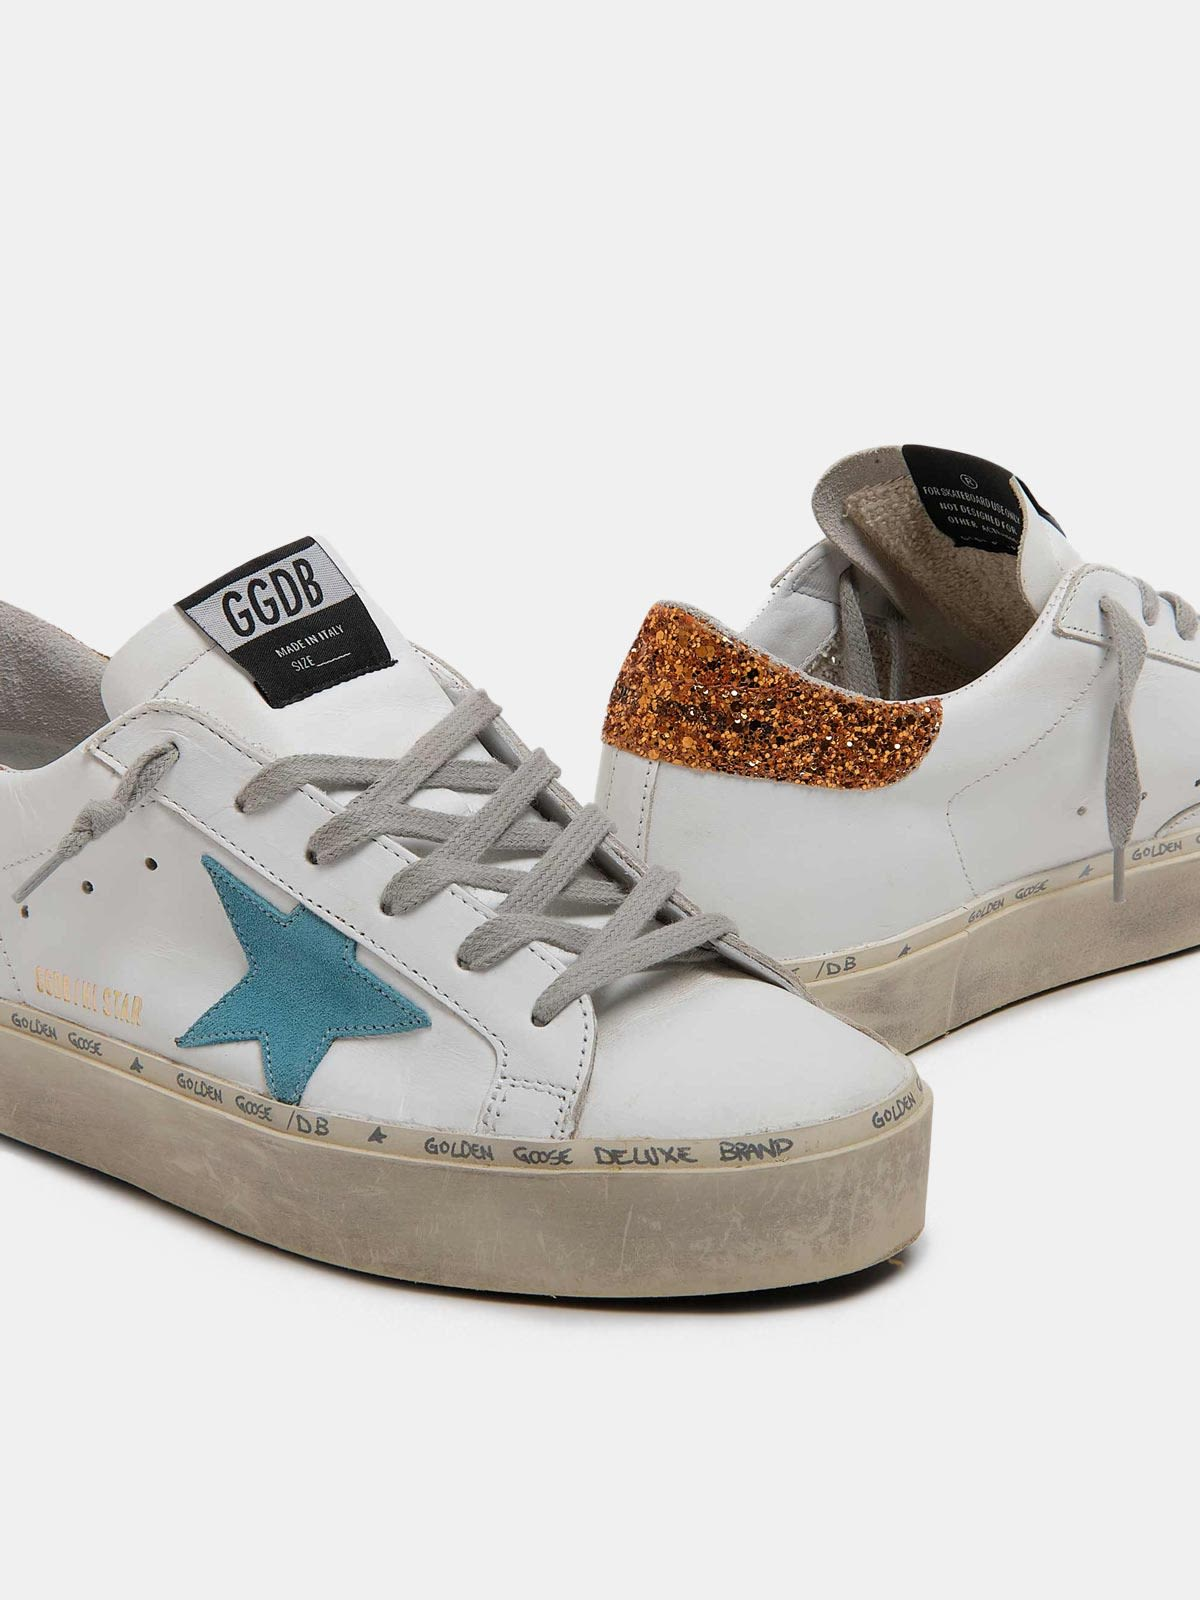 Golden Goose - White Hi-Star sneakers with sky-blue star and glittery heel tab in